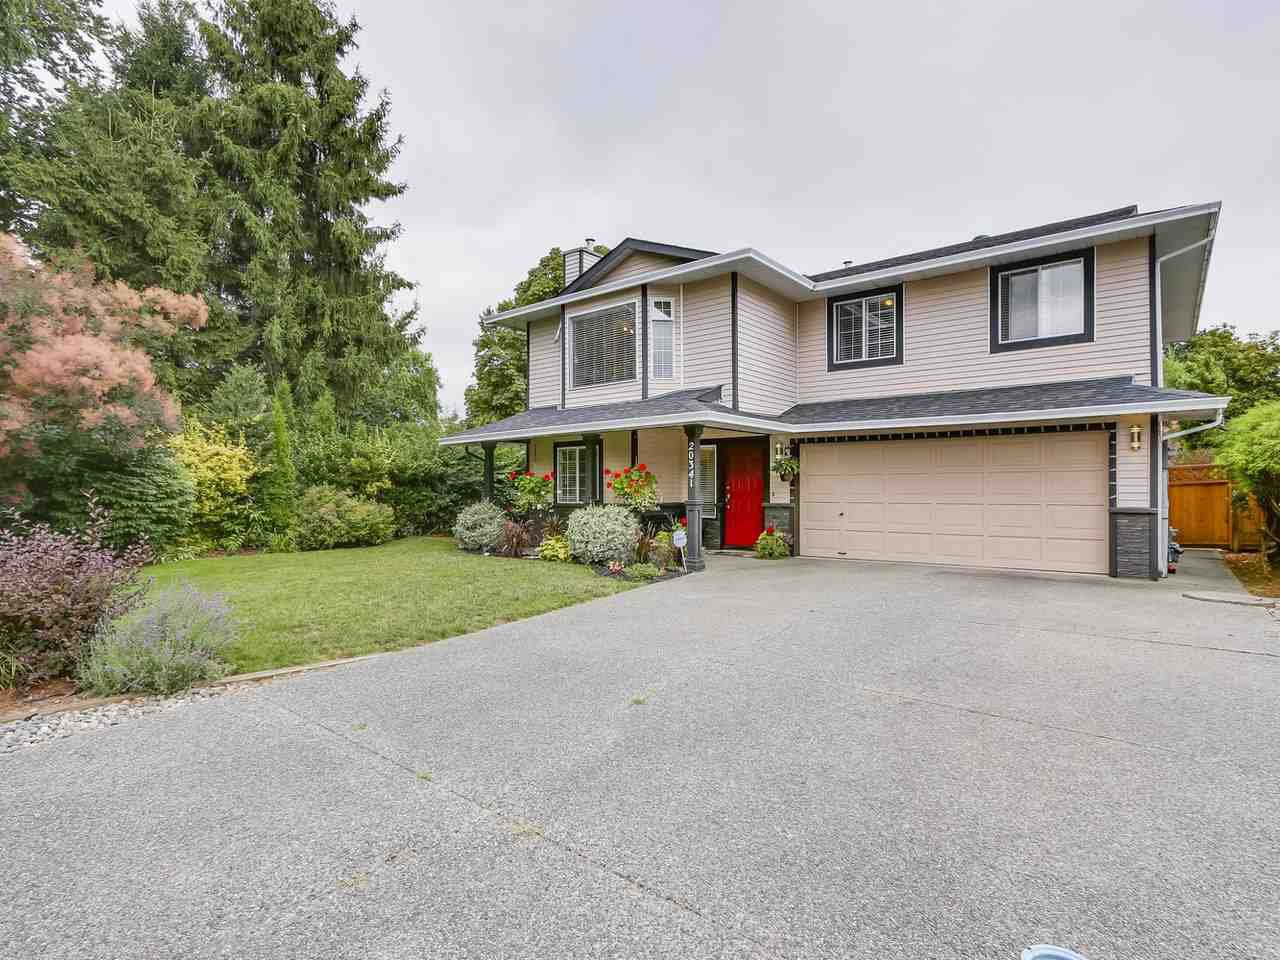 Main Photo: 20341 WALNUT Crescent in Maple Ridge: Southwest Maple Ridge House for sale : MLS®# R2199123